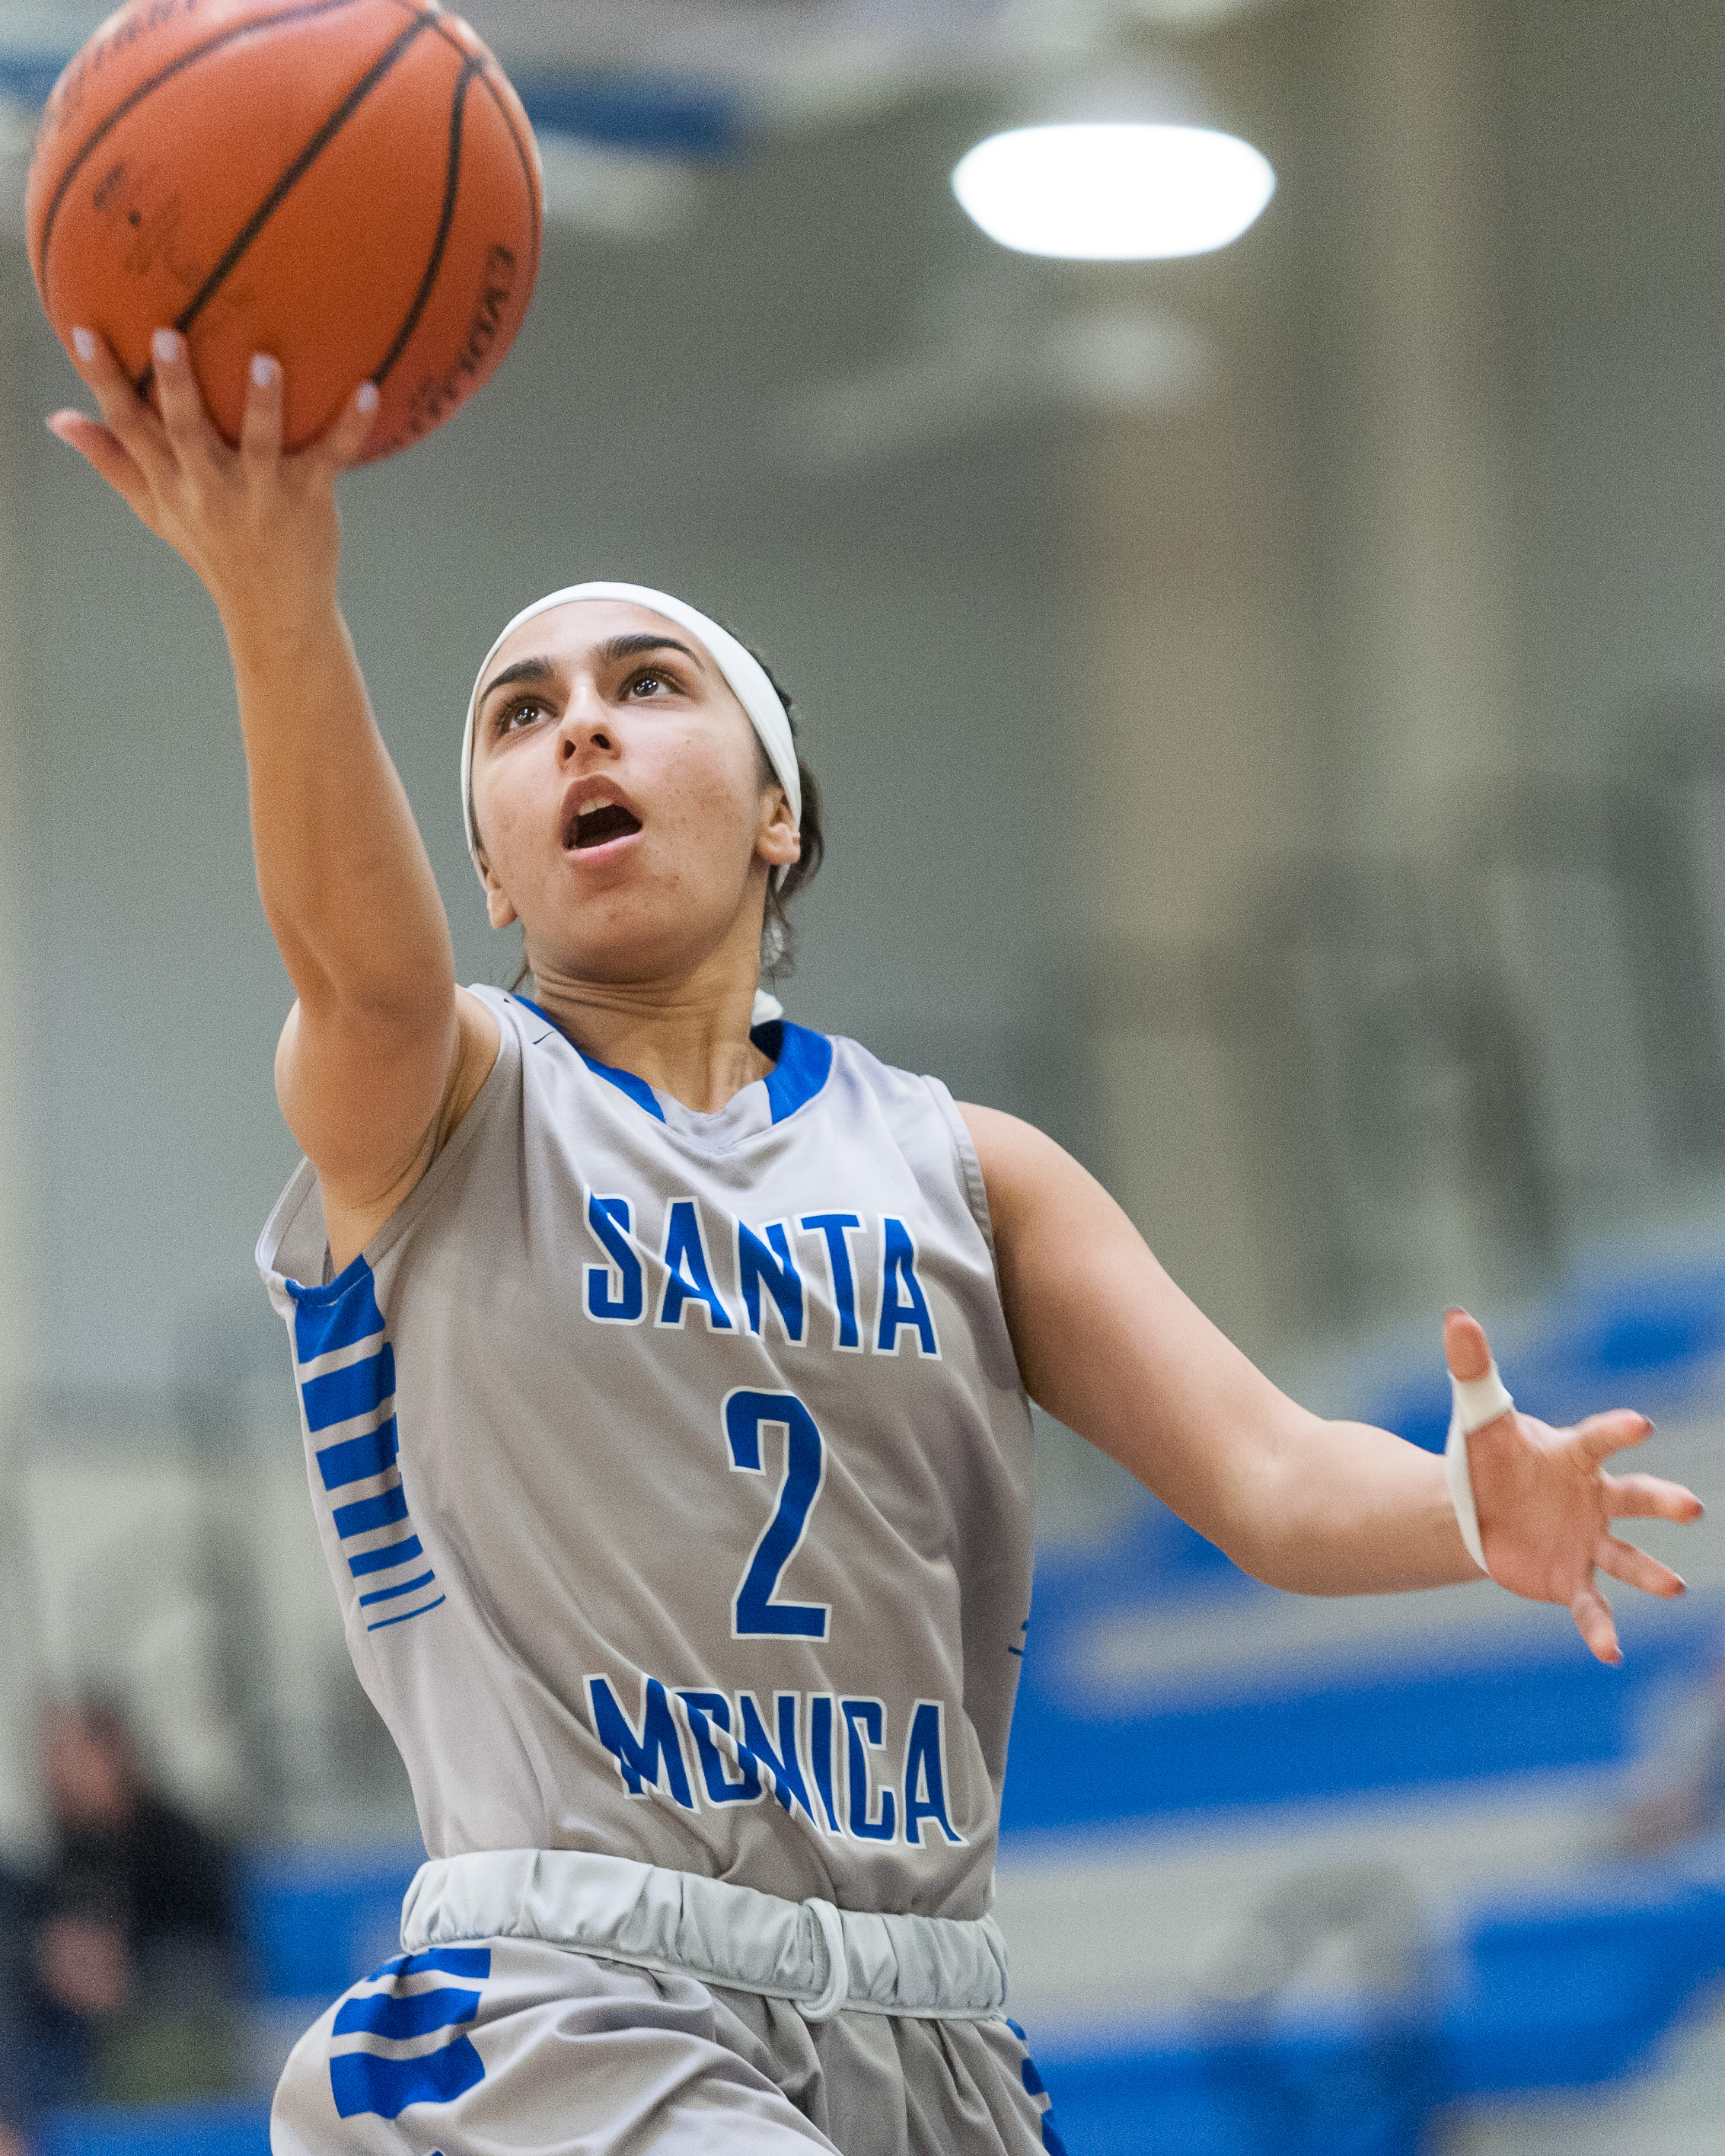 Guard Jessica Melamed (2) of Santa Monica College goes up for an uncontested layup. The Santa Monica College Corsairs lose the game 52-69 to the Moorpark College Raiders. The game was held at the SMC Pavilion at the Santa Monica College Main Campus in Santa Monica, Calif.. December 9, 2017. (Photo by: Justin Han/Corsair Staff)